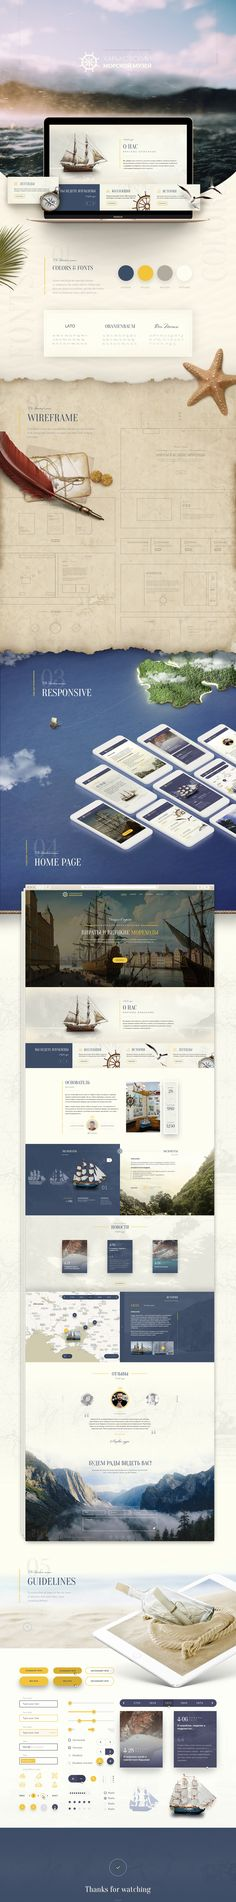 My main task is to rethink the concept of the Kharkiv maritime museum website. To make it contemporary and memorable.